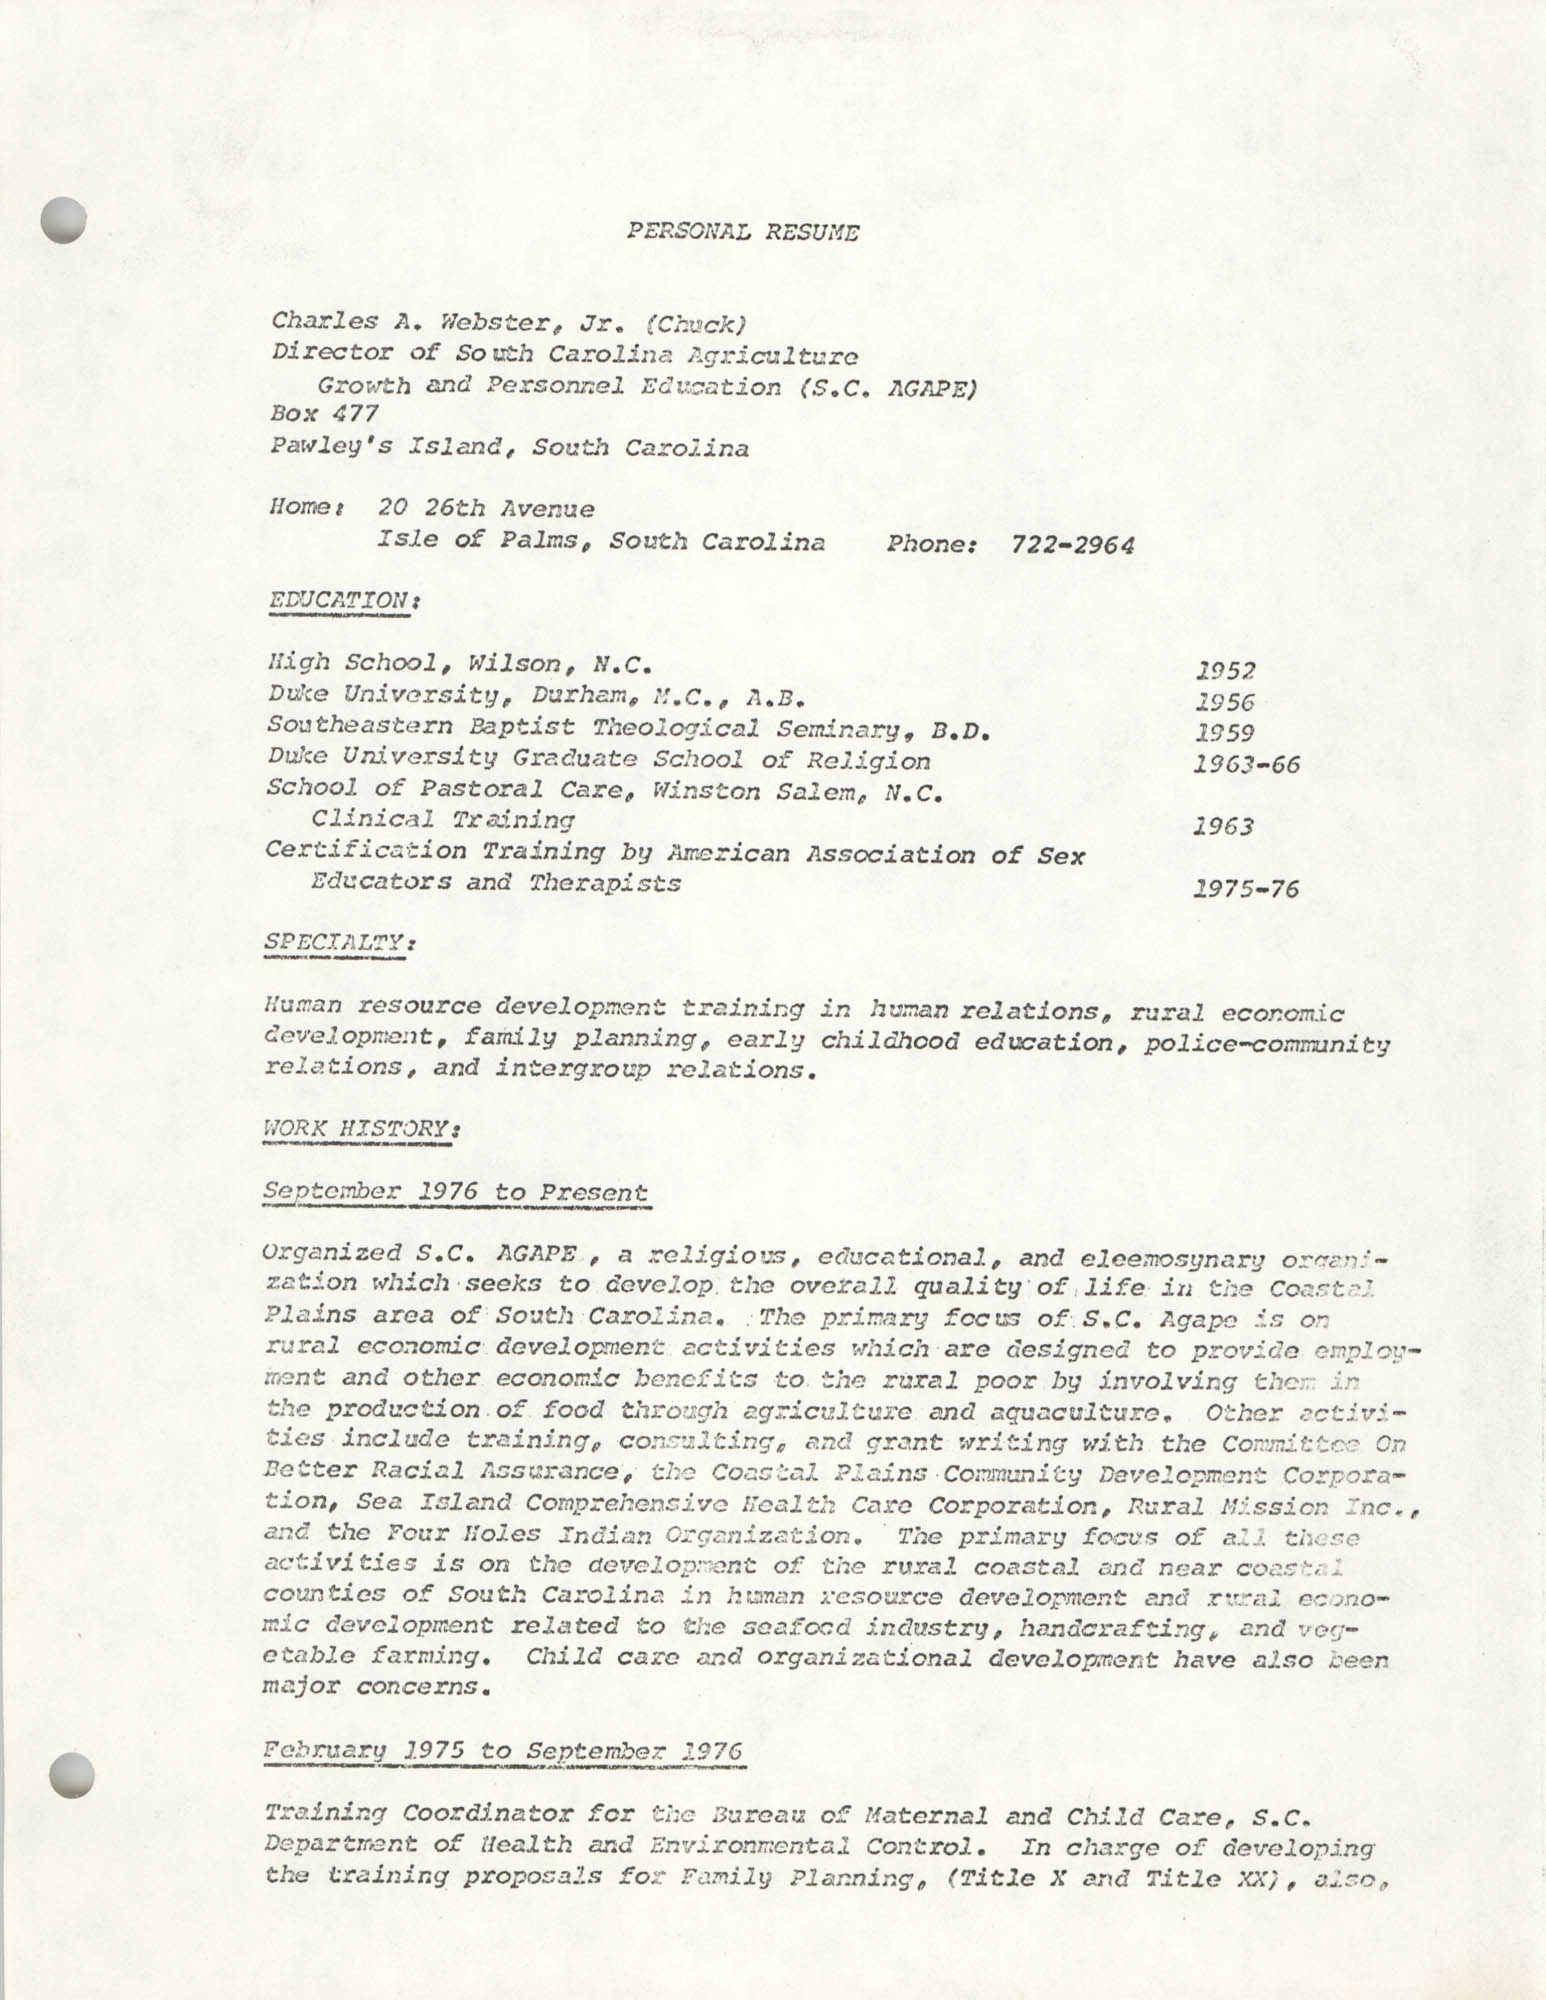 COBRA Consultant Resumes, Charles A. Webster, Jr., Page 1